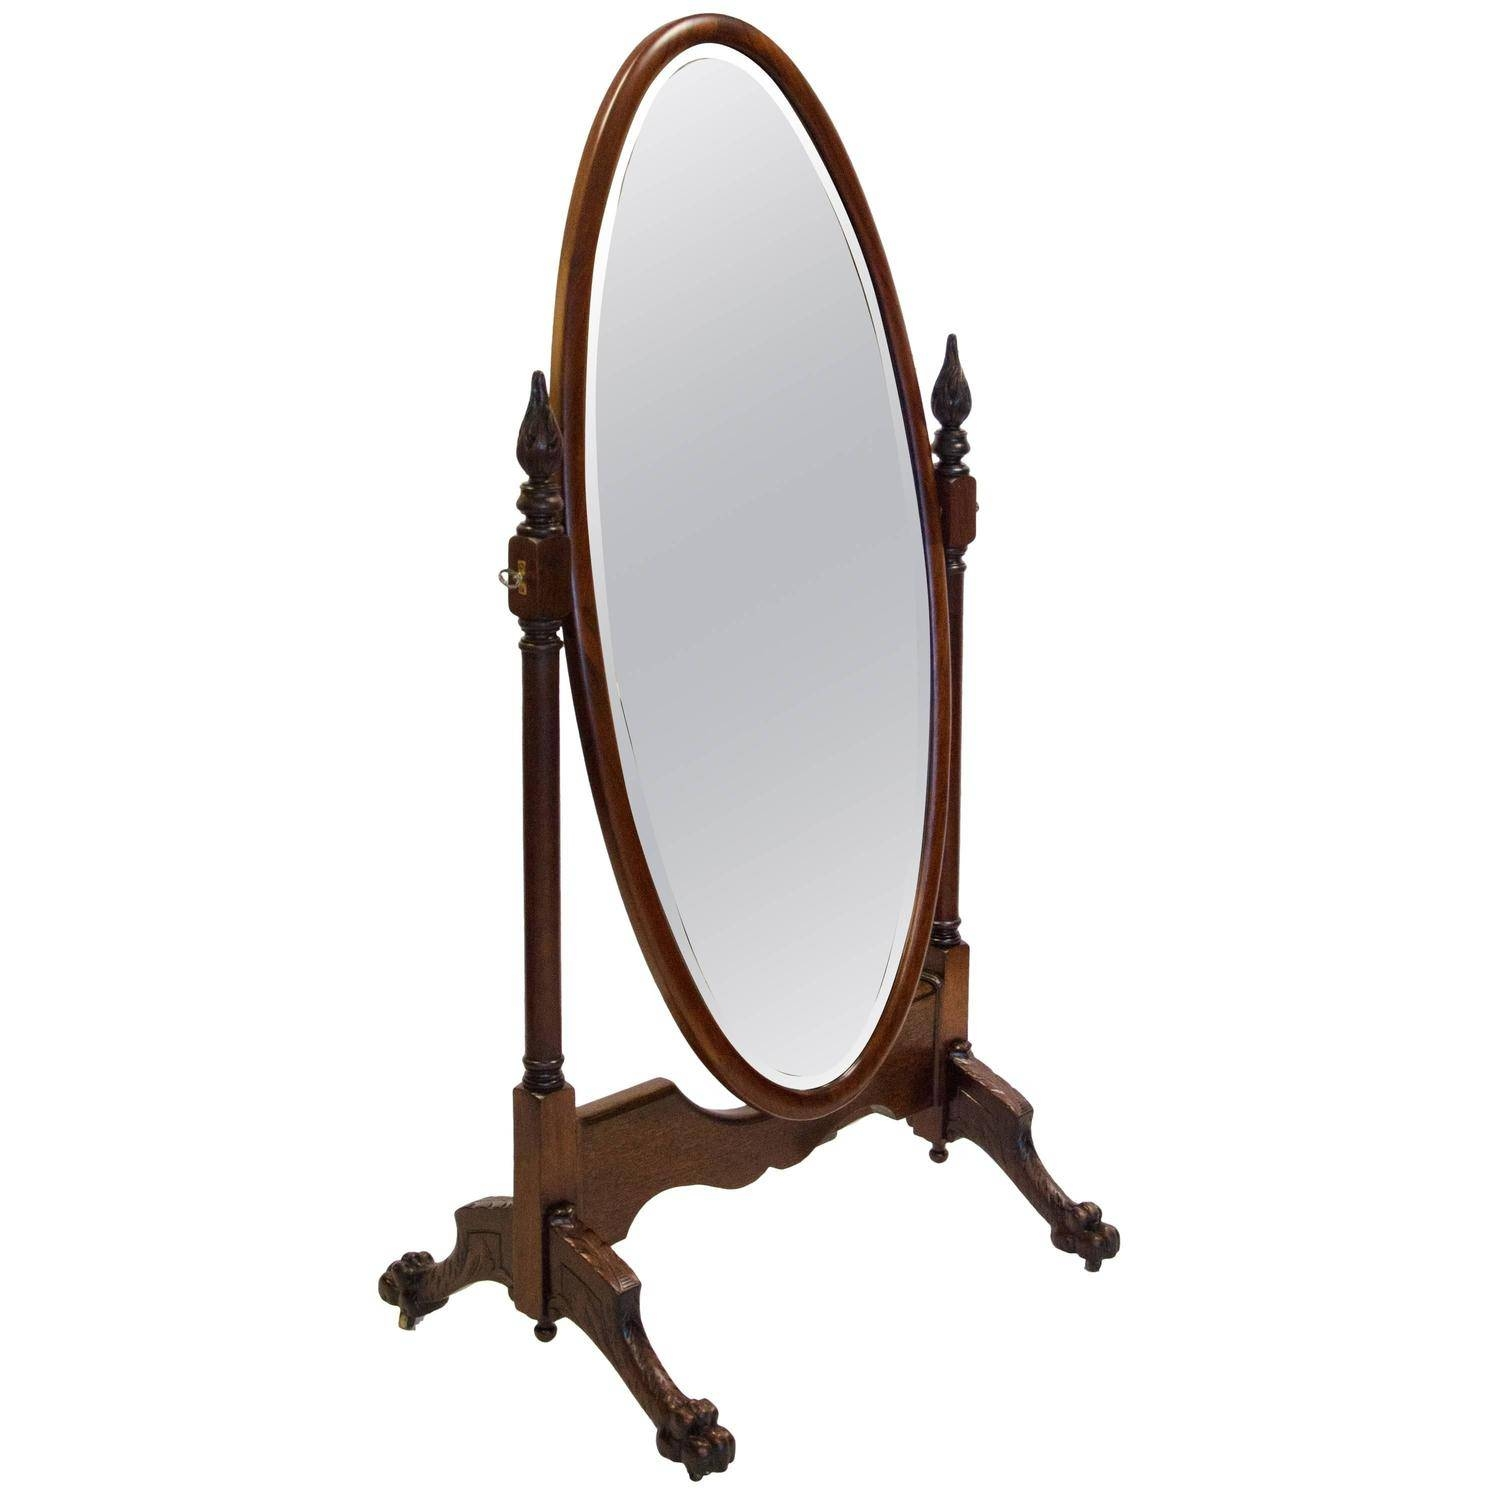 Antique & Vintage Floor Mirrors And Full-Length Mirrors For Sale with Vintage Full Length Mirrors (Image 2 of 25)